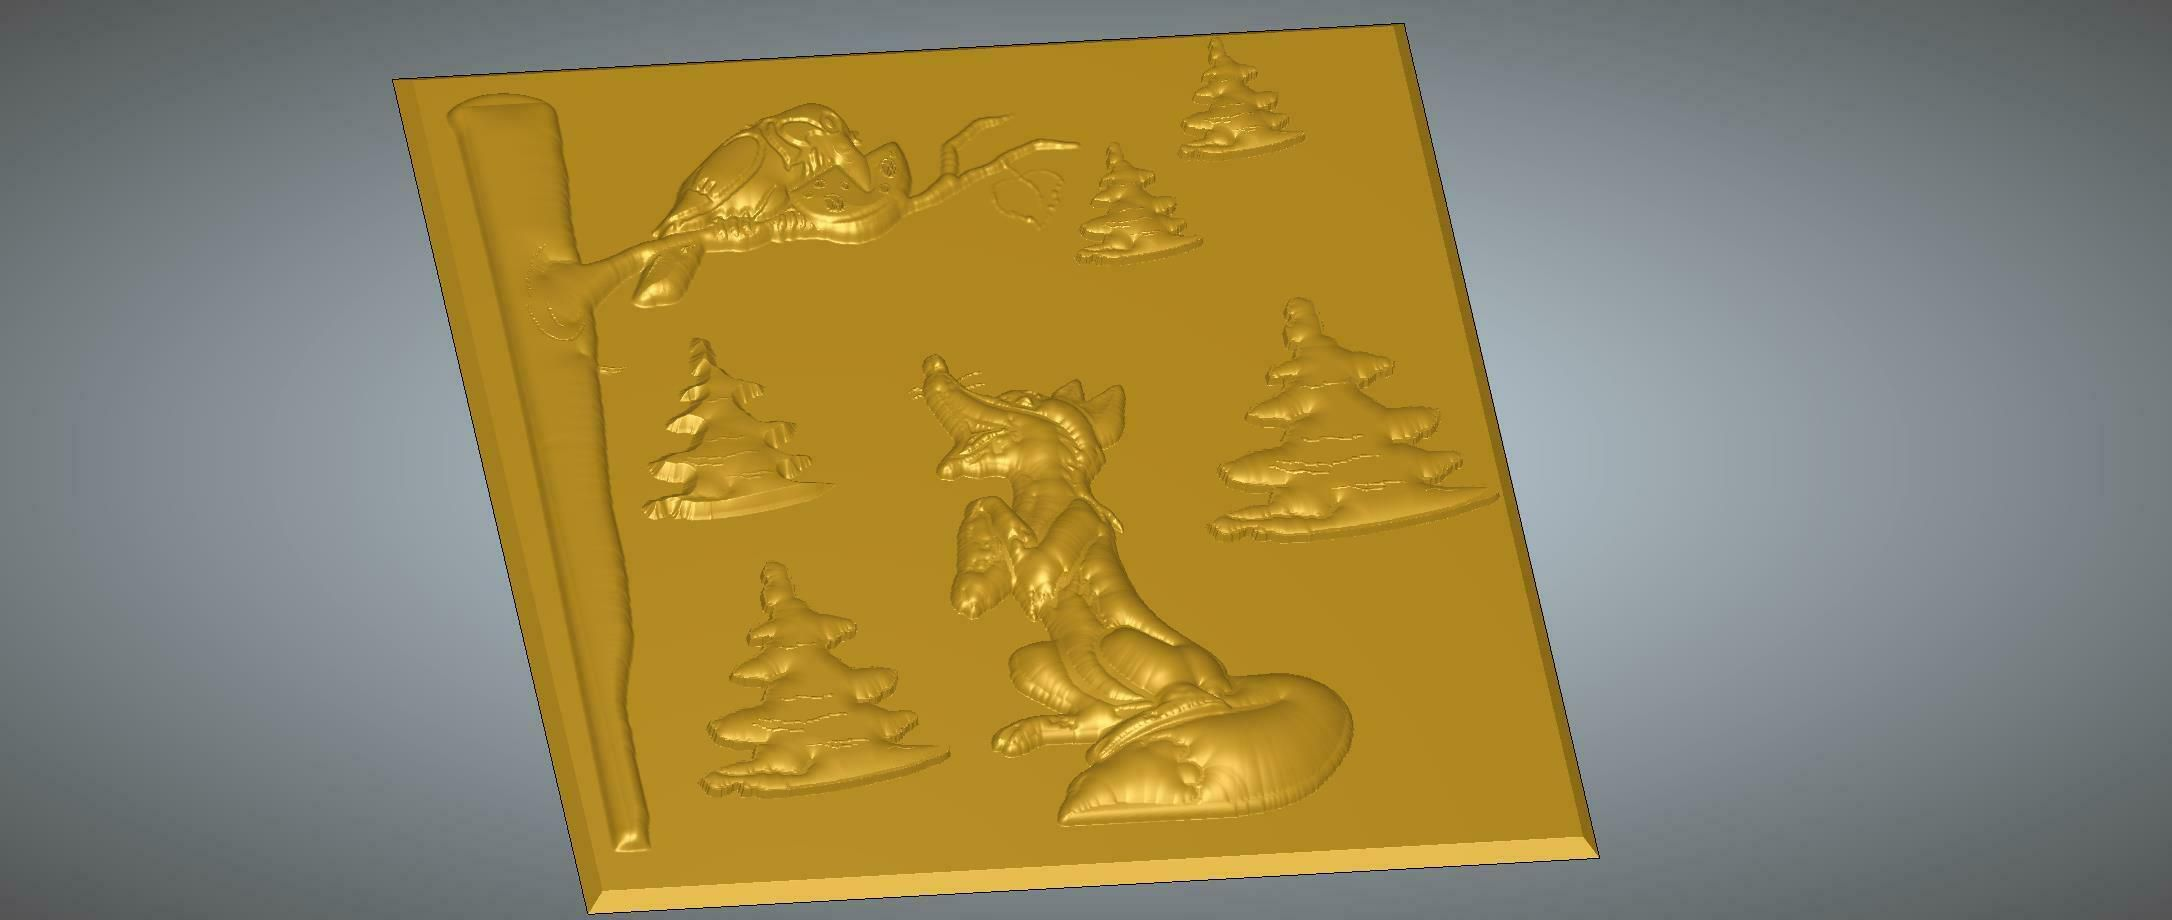 """lisa-02-03.jpg Download STL file Bas-relief real 3D Relief For CNC and sculpture building decor for decoration """"THE CROW AND THE FOX"""" lisa-02 3d print and cnc • 3D printer template, Dzusto"""